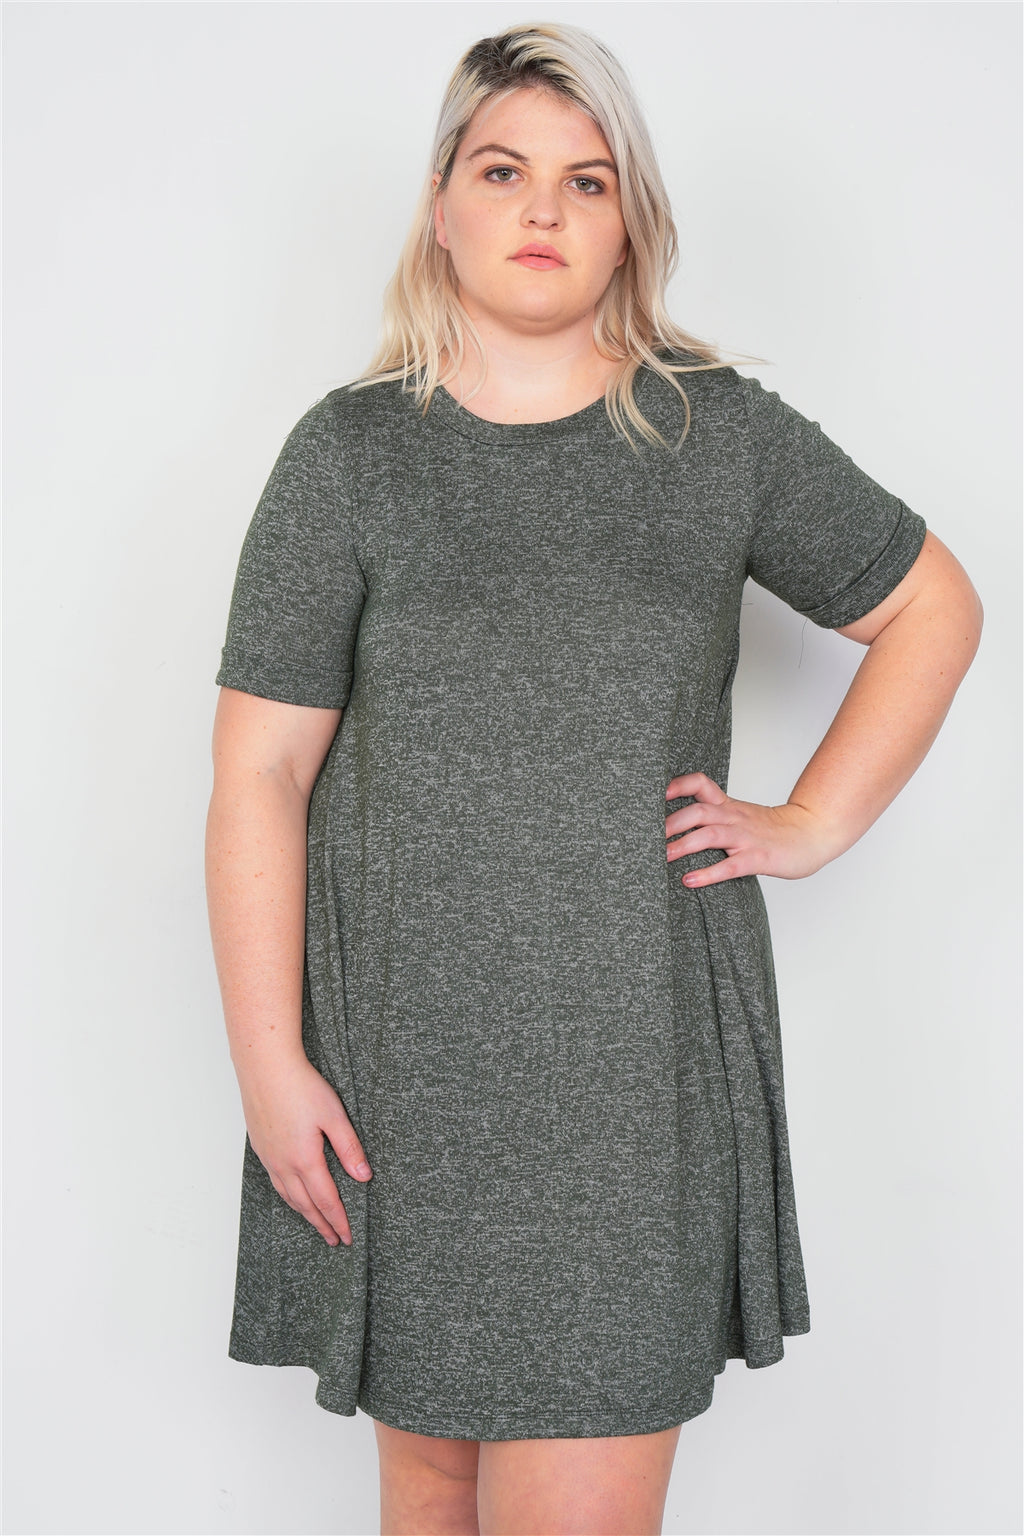 Plus Size Flare Casual Cuffed Short Sleeve Mini Shirt Dress